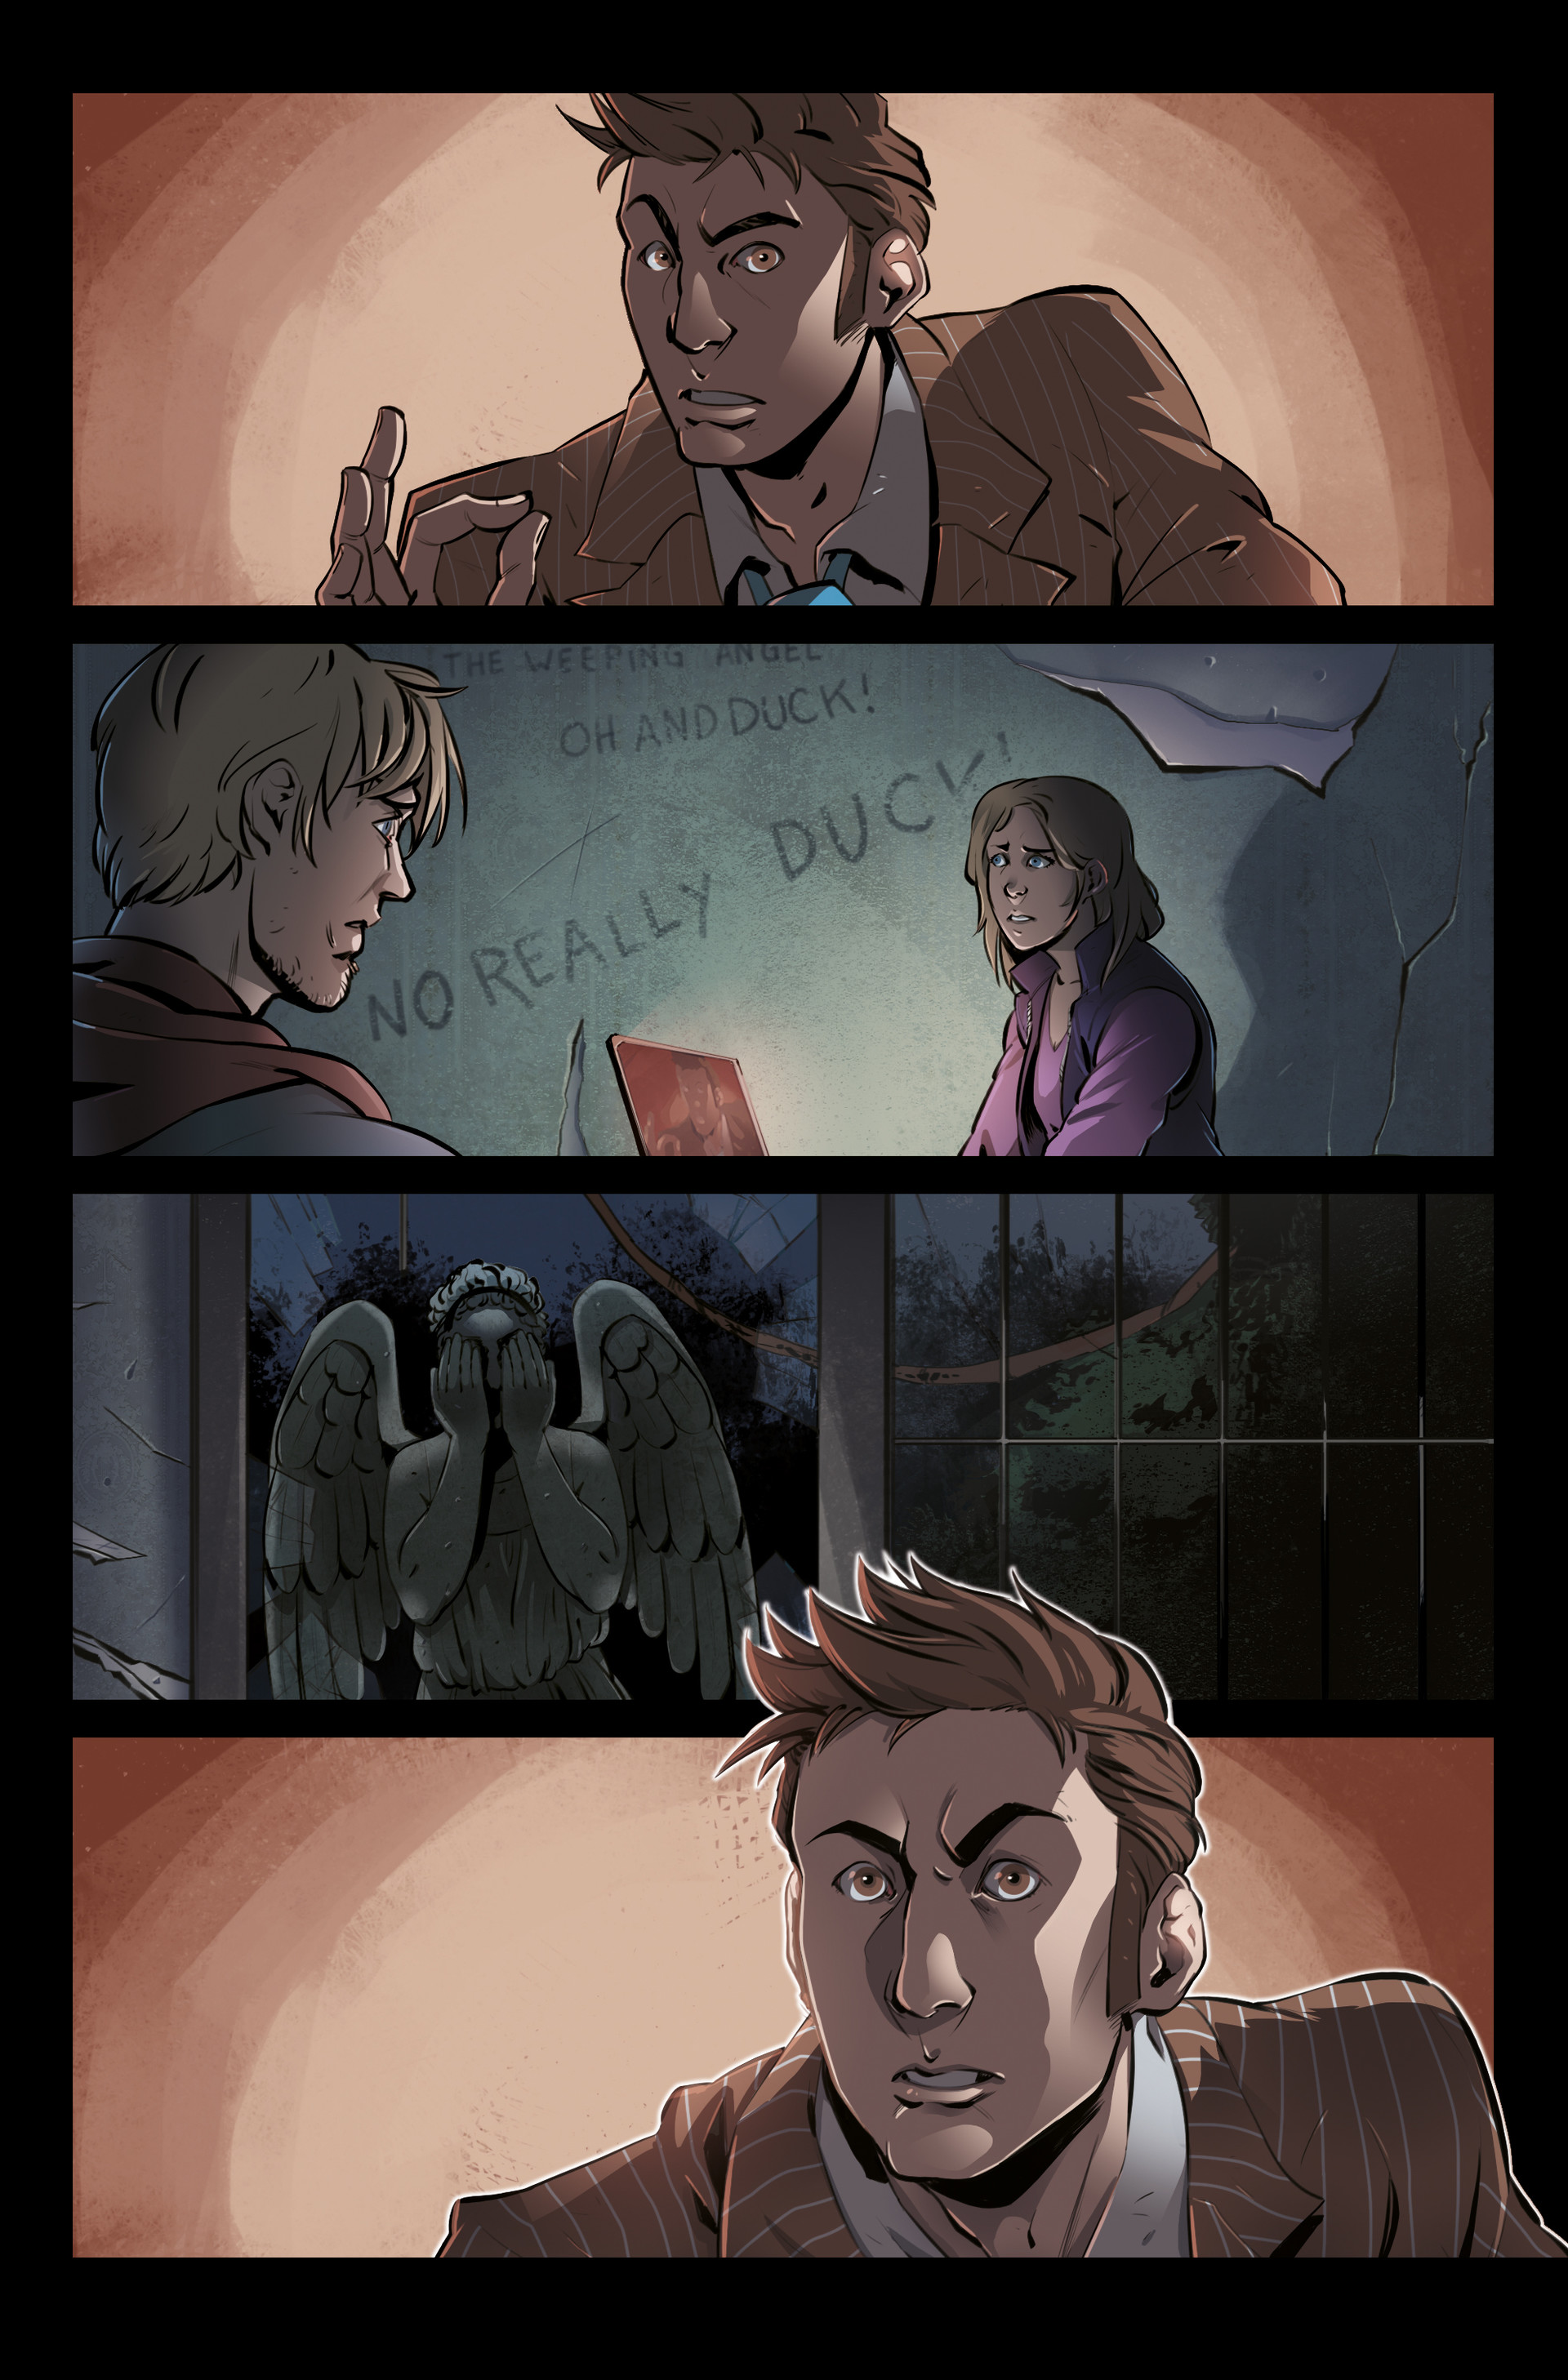 Claudia cocci doctor who page 01 new notext